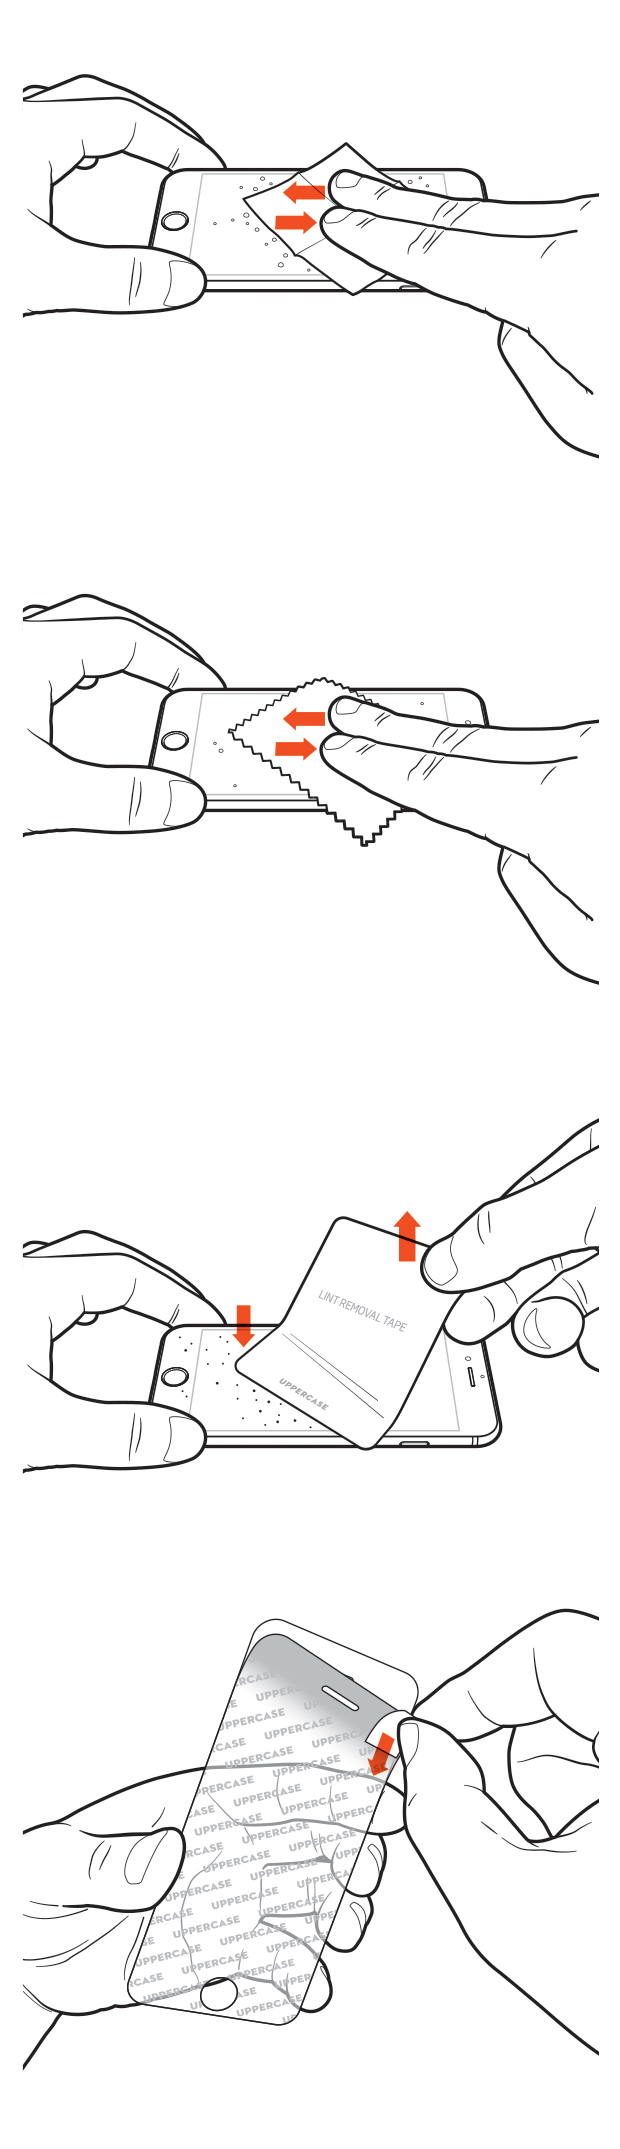 Screen Protector Installation Instructions